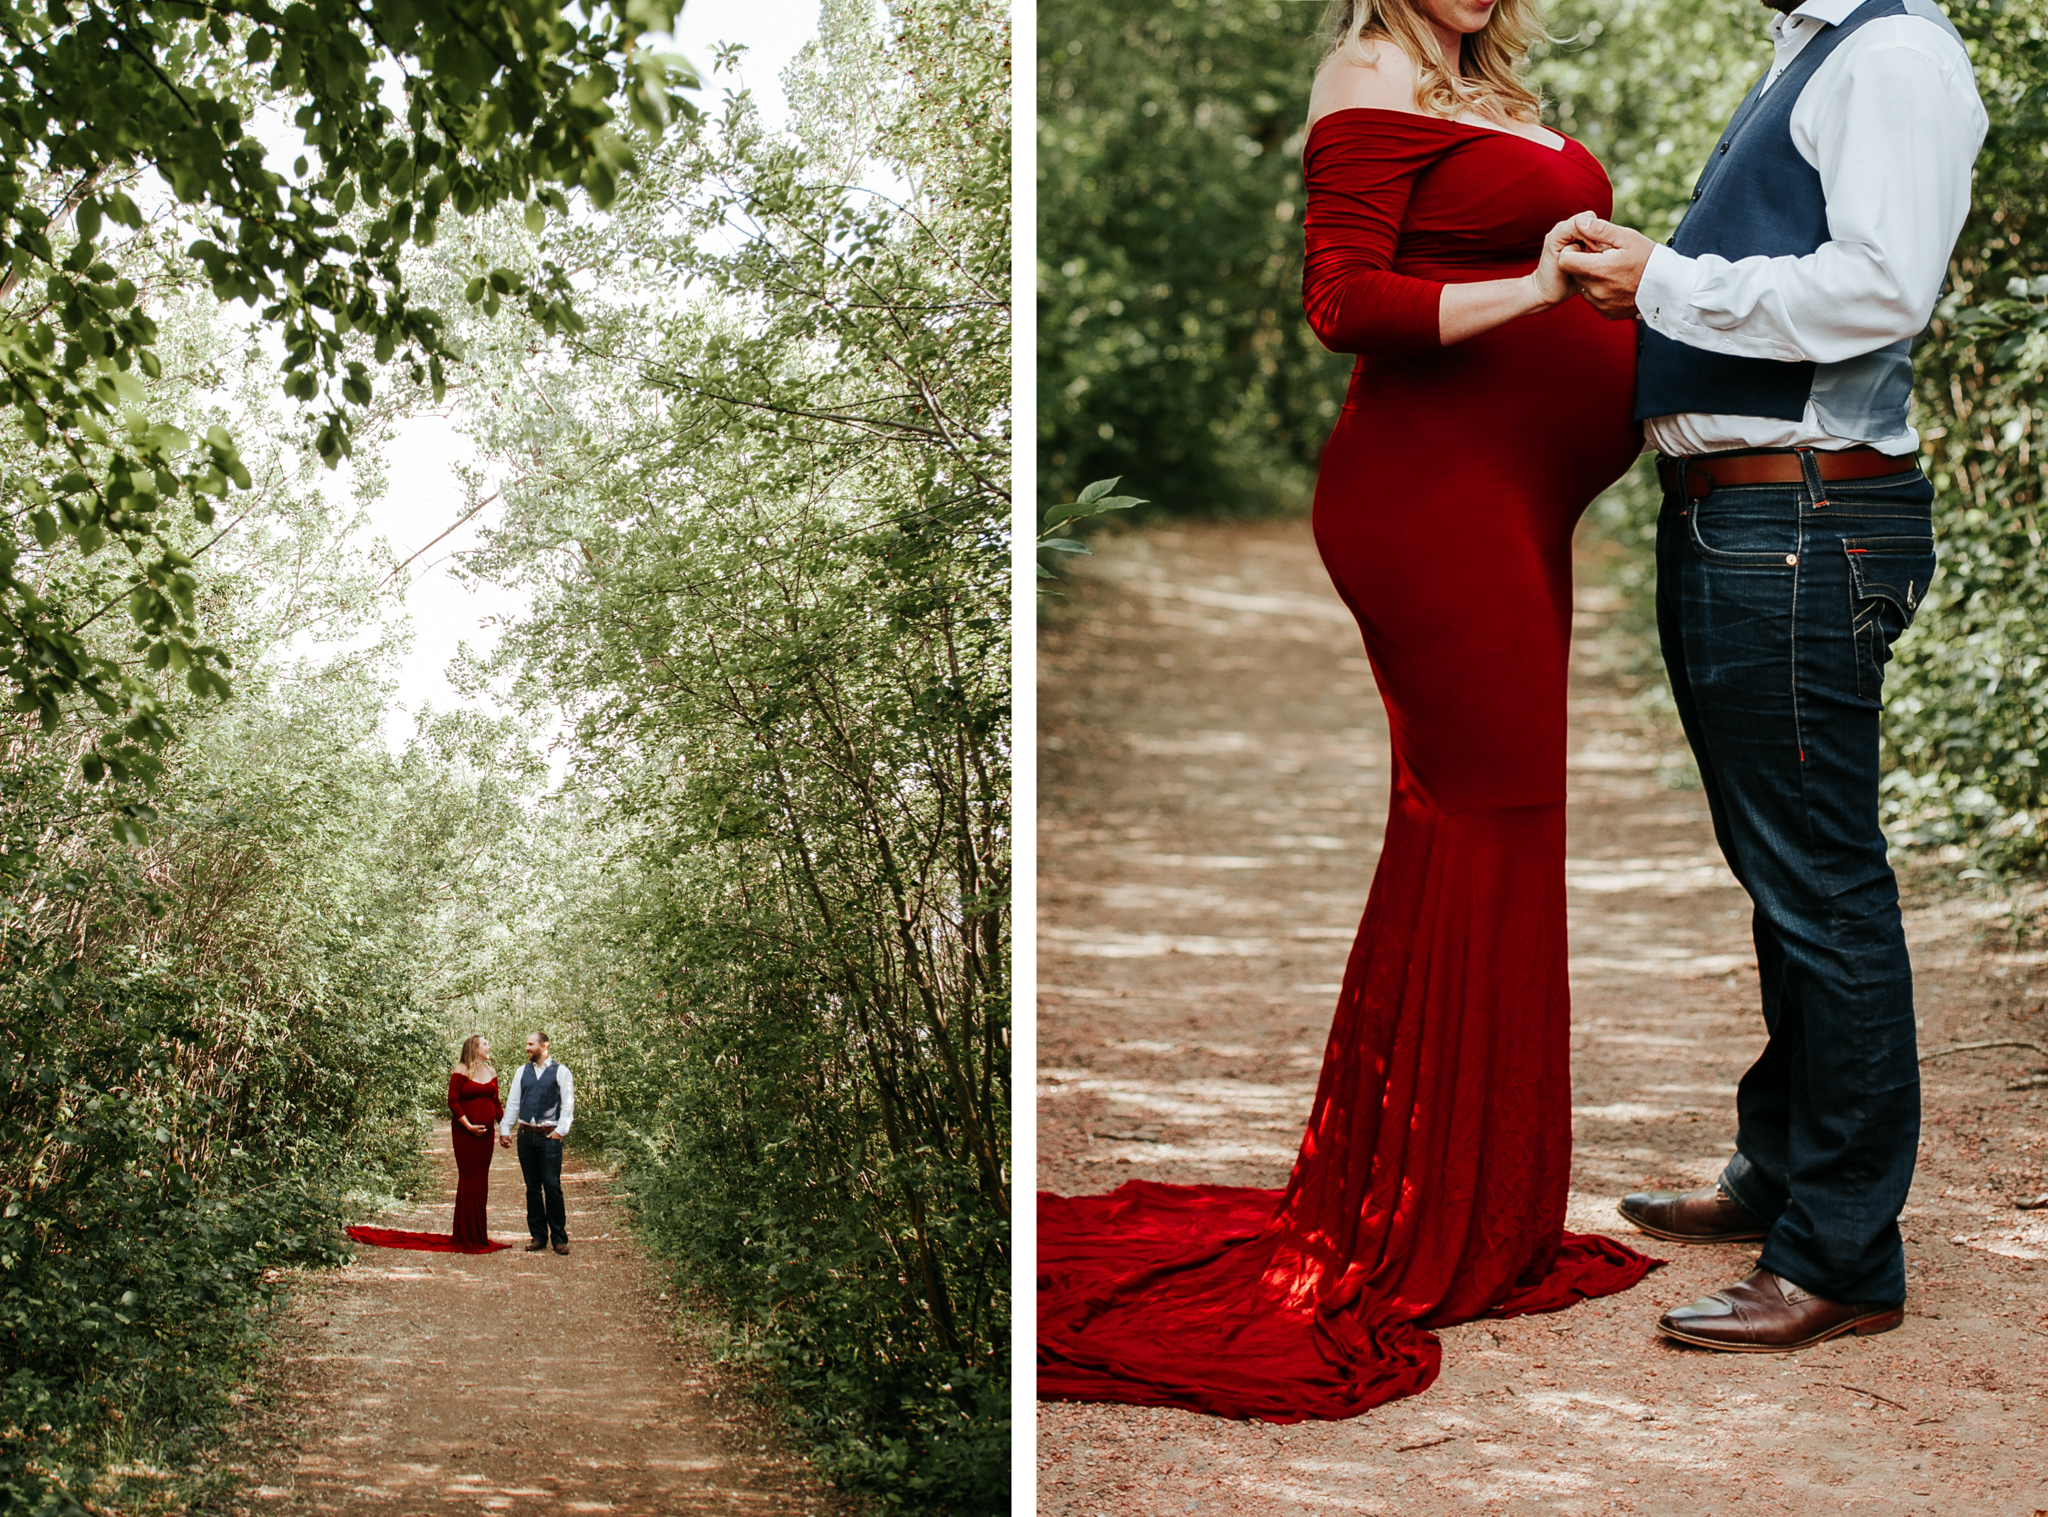 lethbridge-photographer-love-and-be-loved-photography-katie-maternity-birth-photographer-picture-image-photo-25.jpg